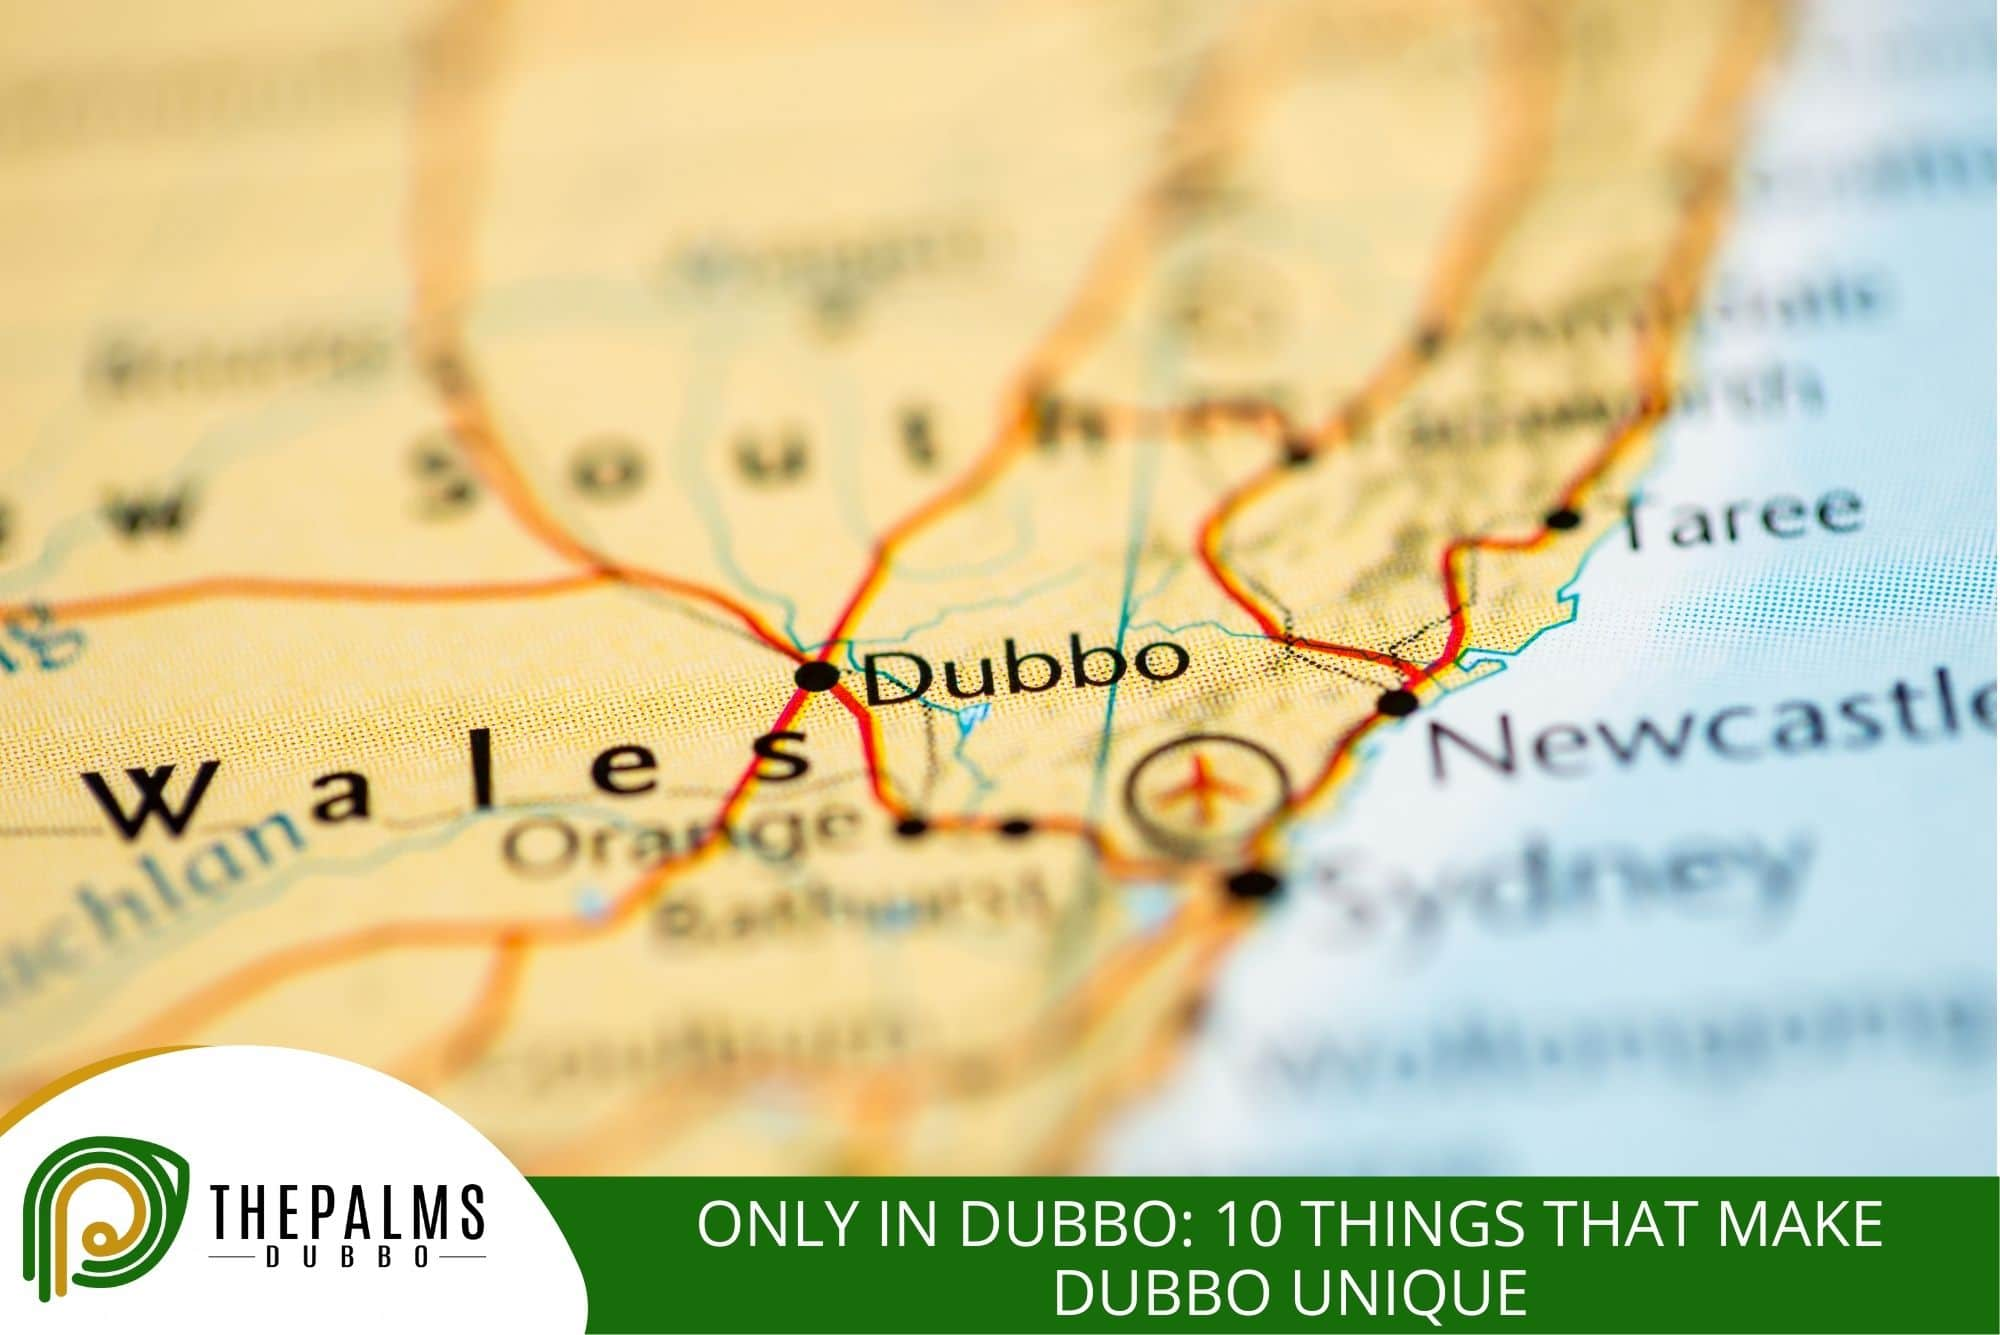 Only in Dubbo: 10 Things That Make Dubbo Unique